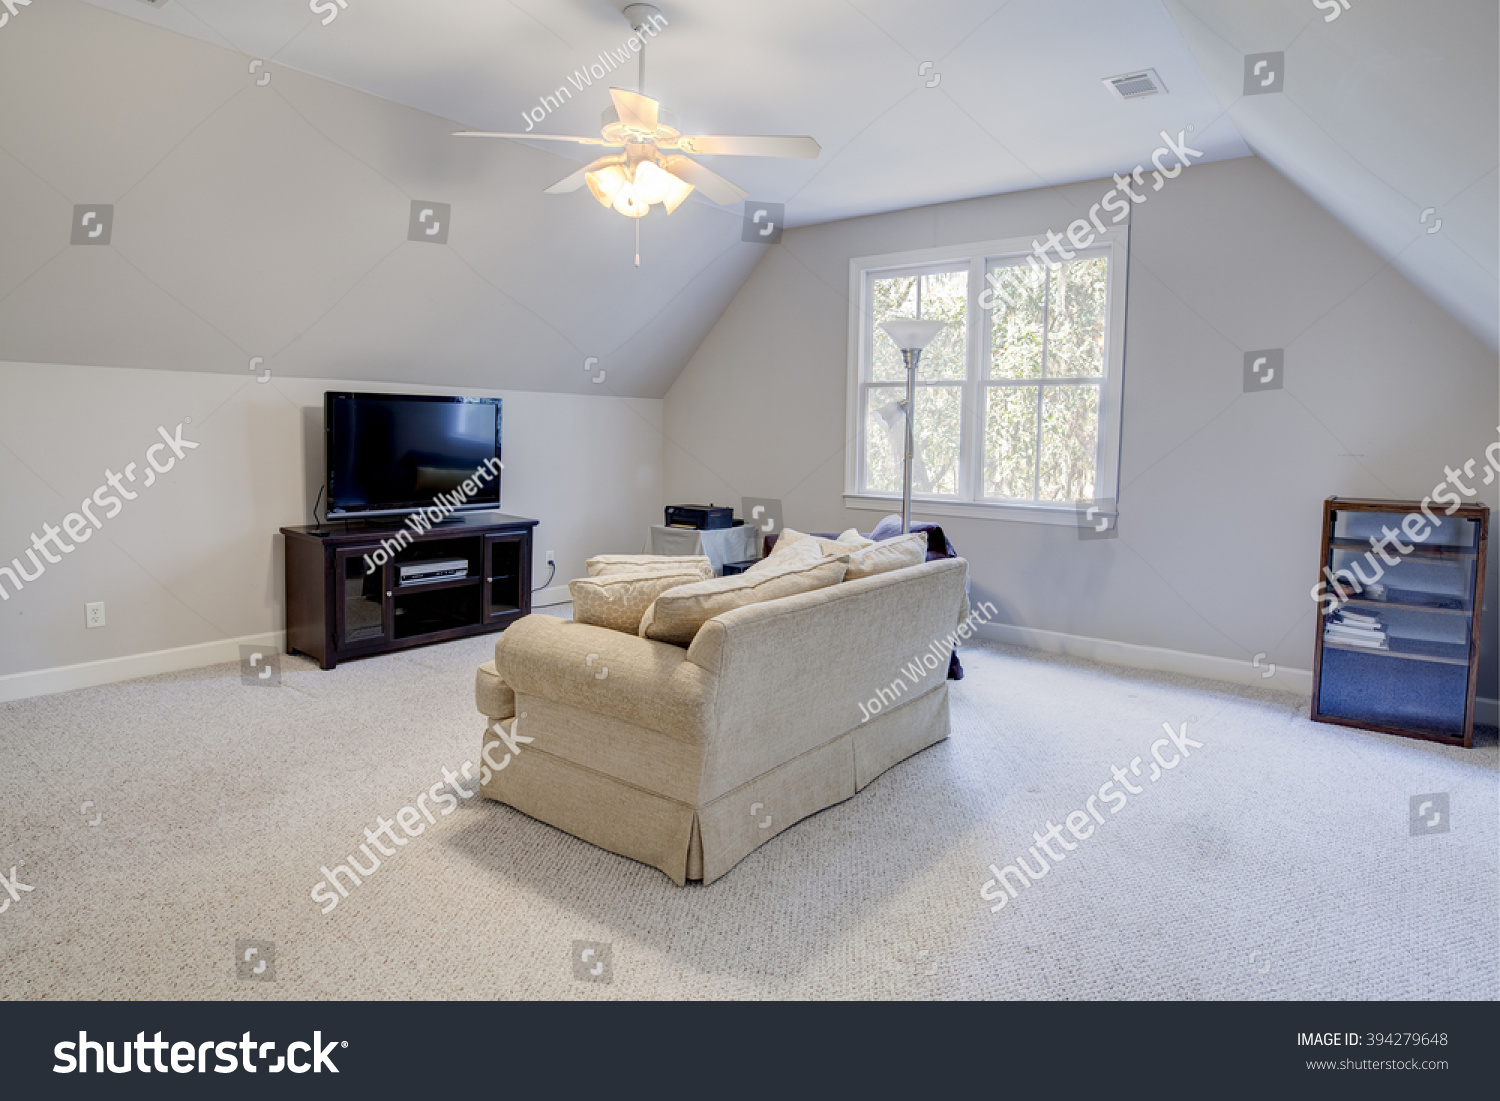 media room in attic of house with windows stock photo